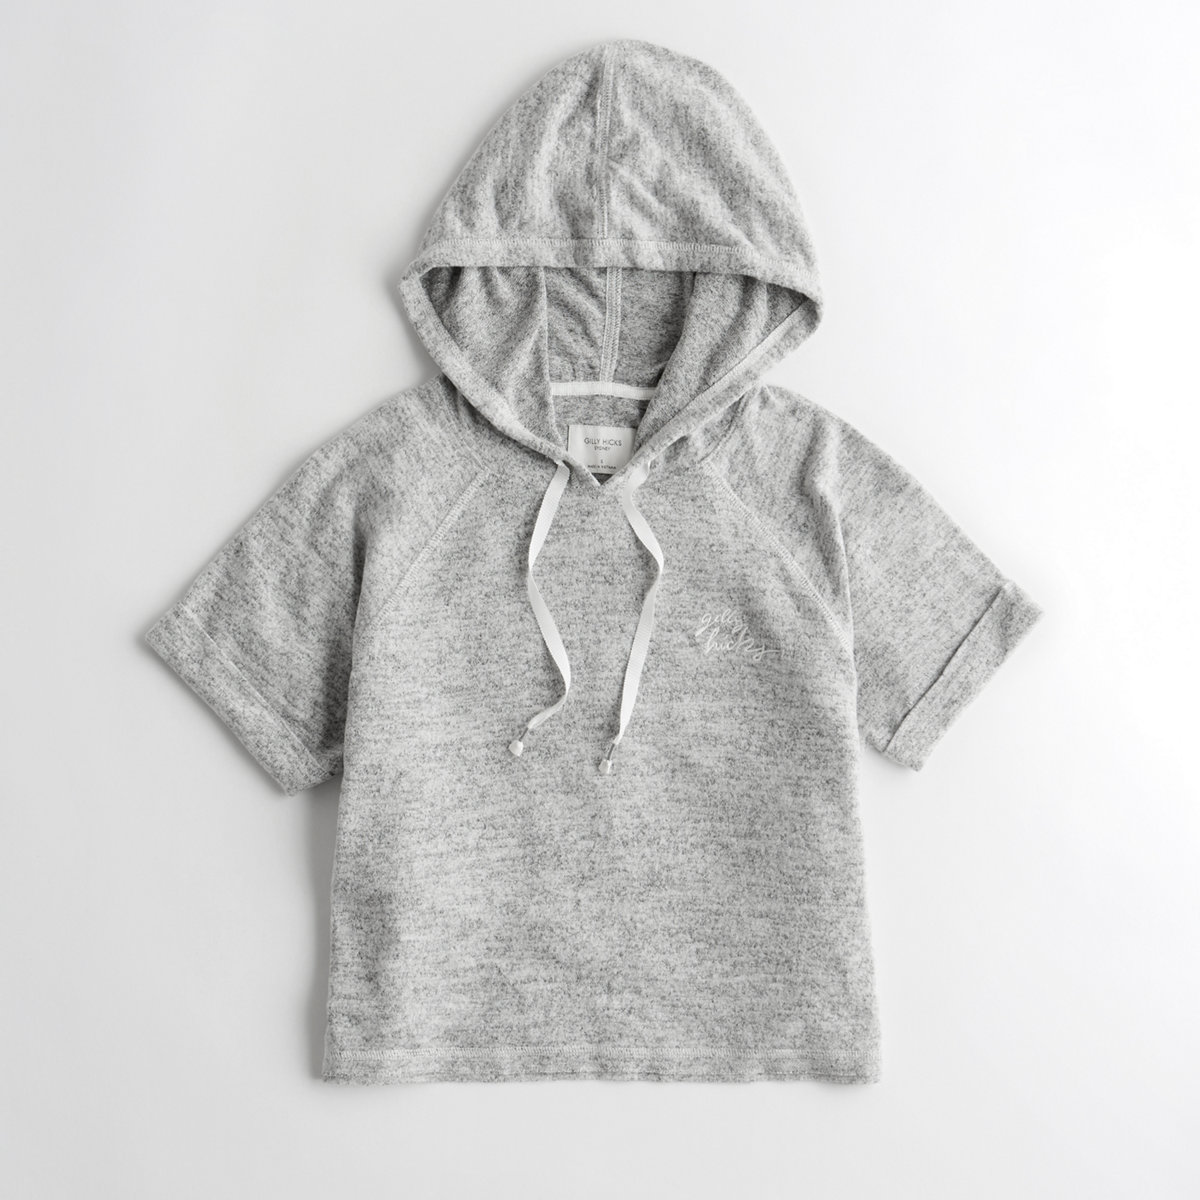 Short-Sleeve Crop Hooded T-Shirt